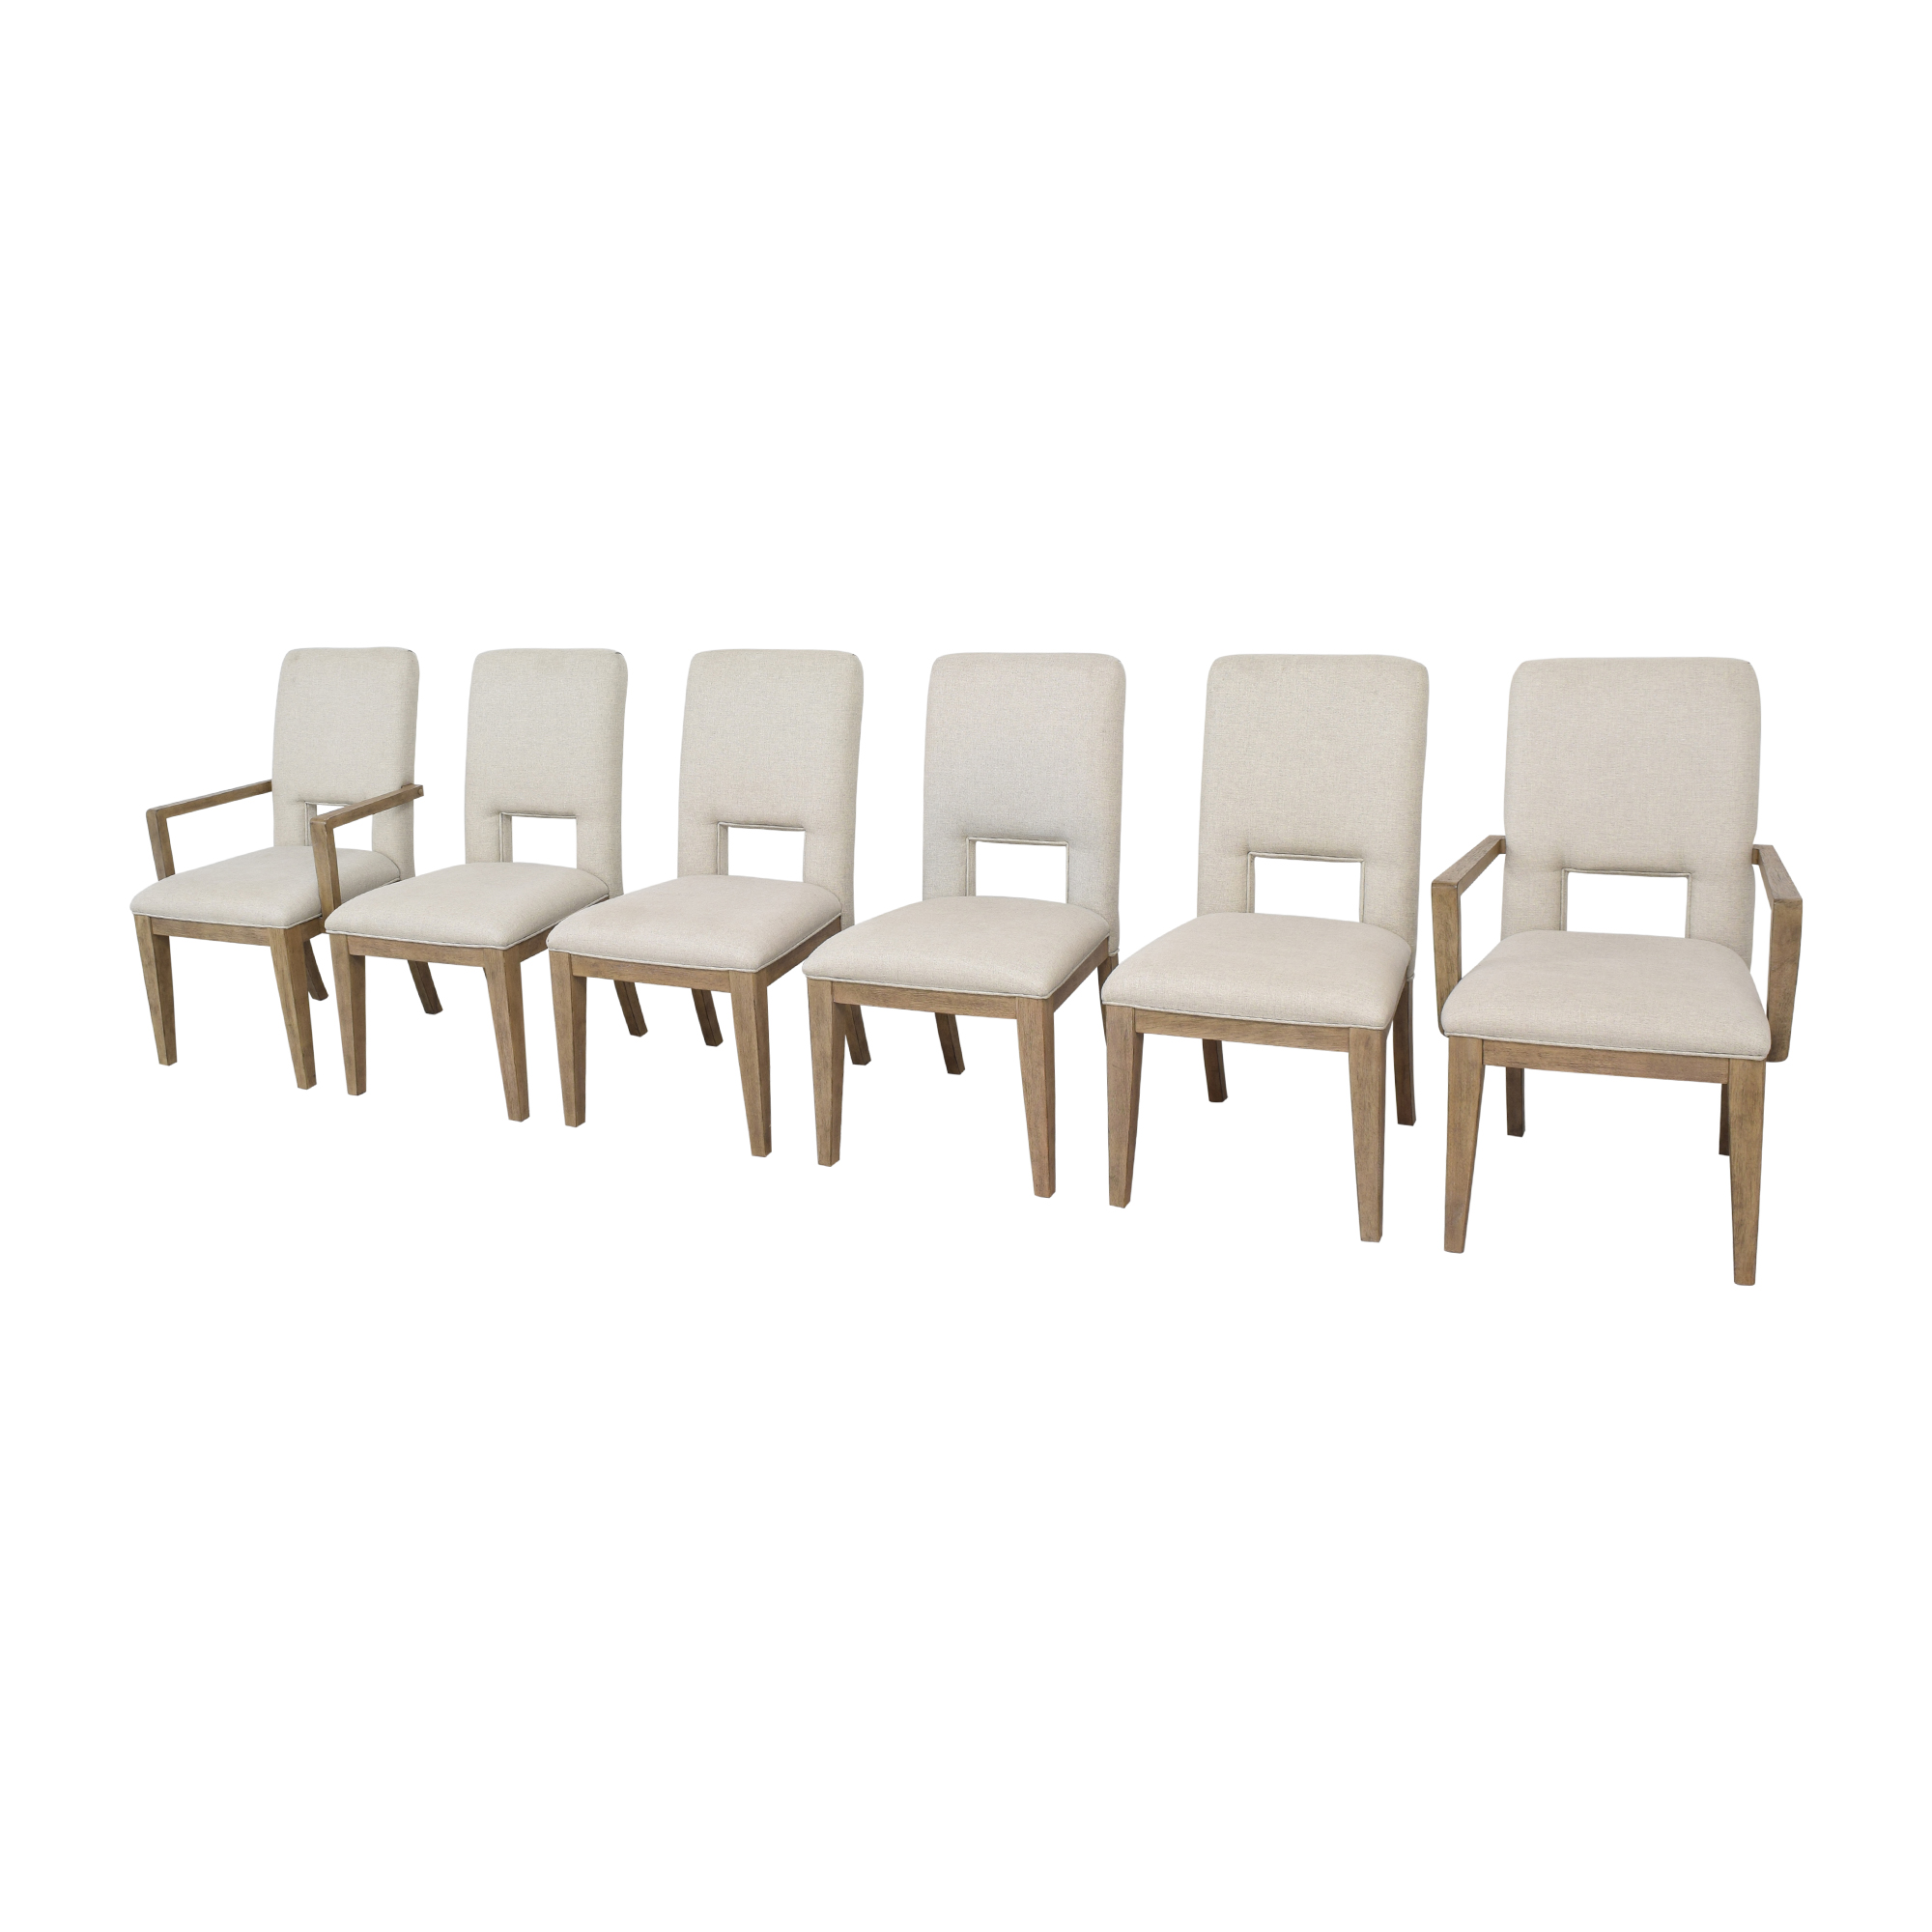 Macy's Altair Dining Chairs sale